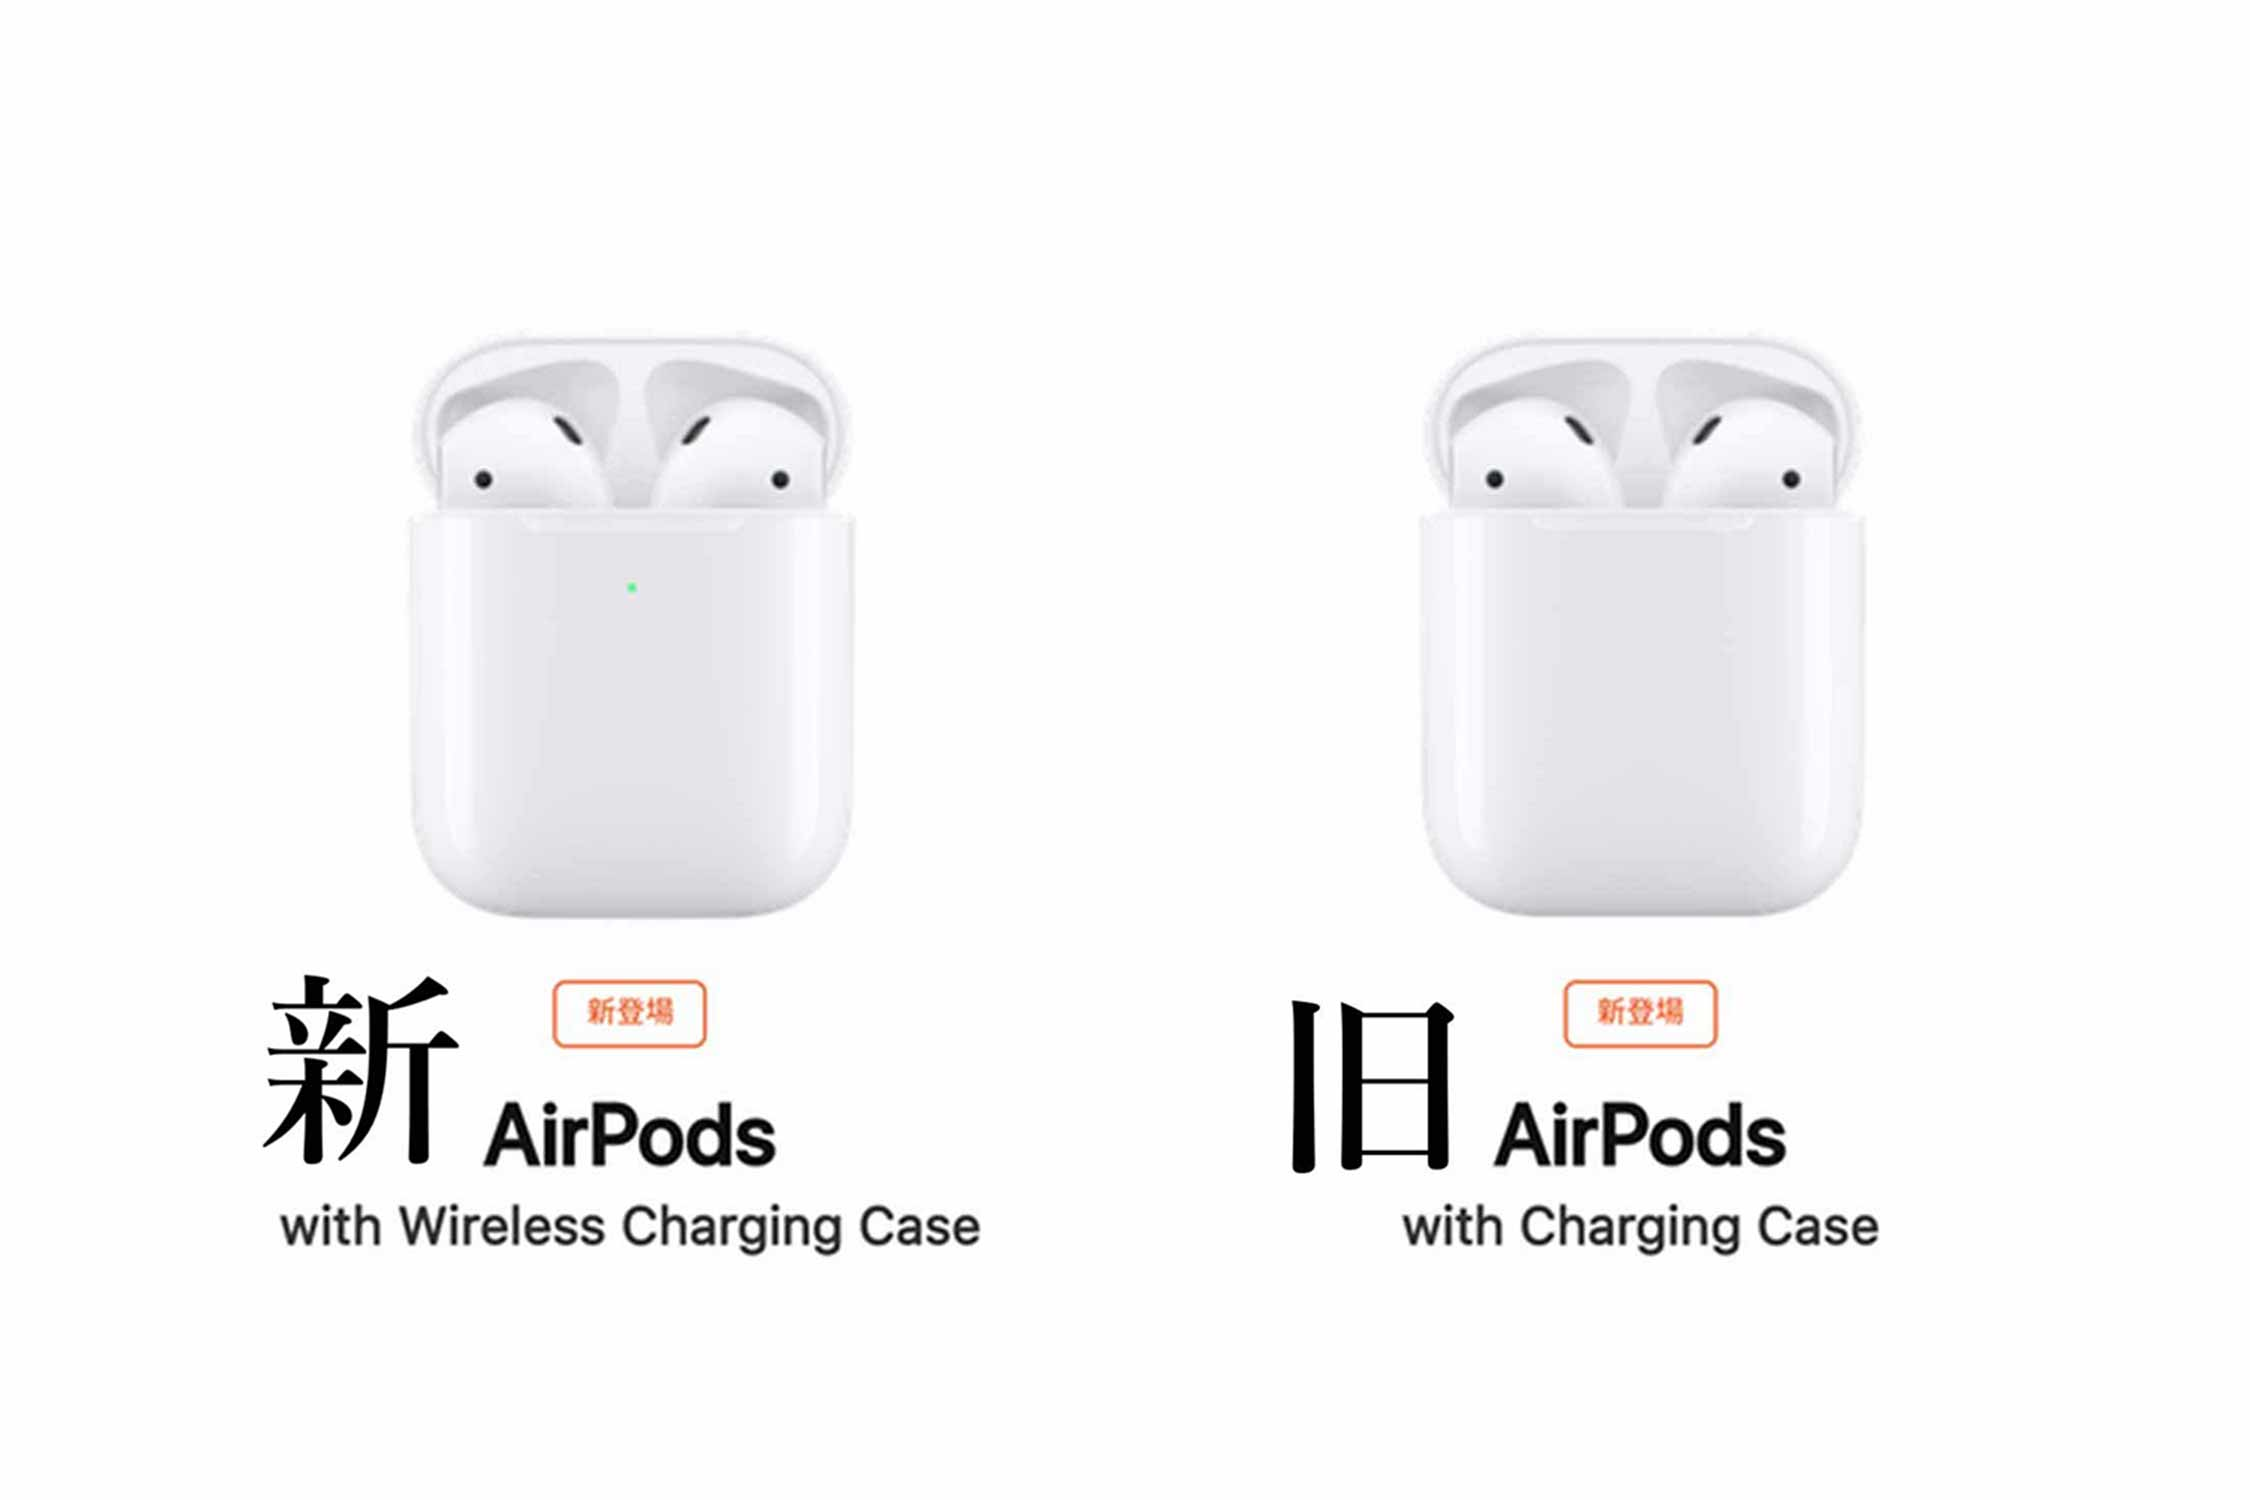 Airpods 新型 比較 アイキャッチ